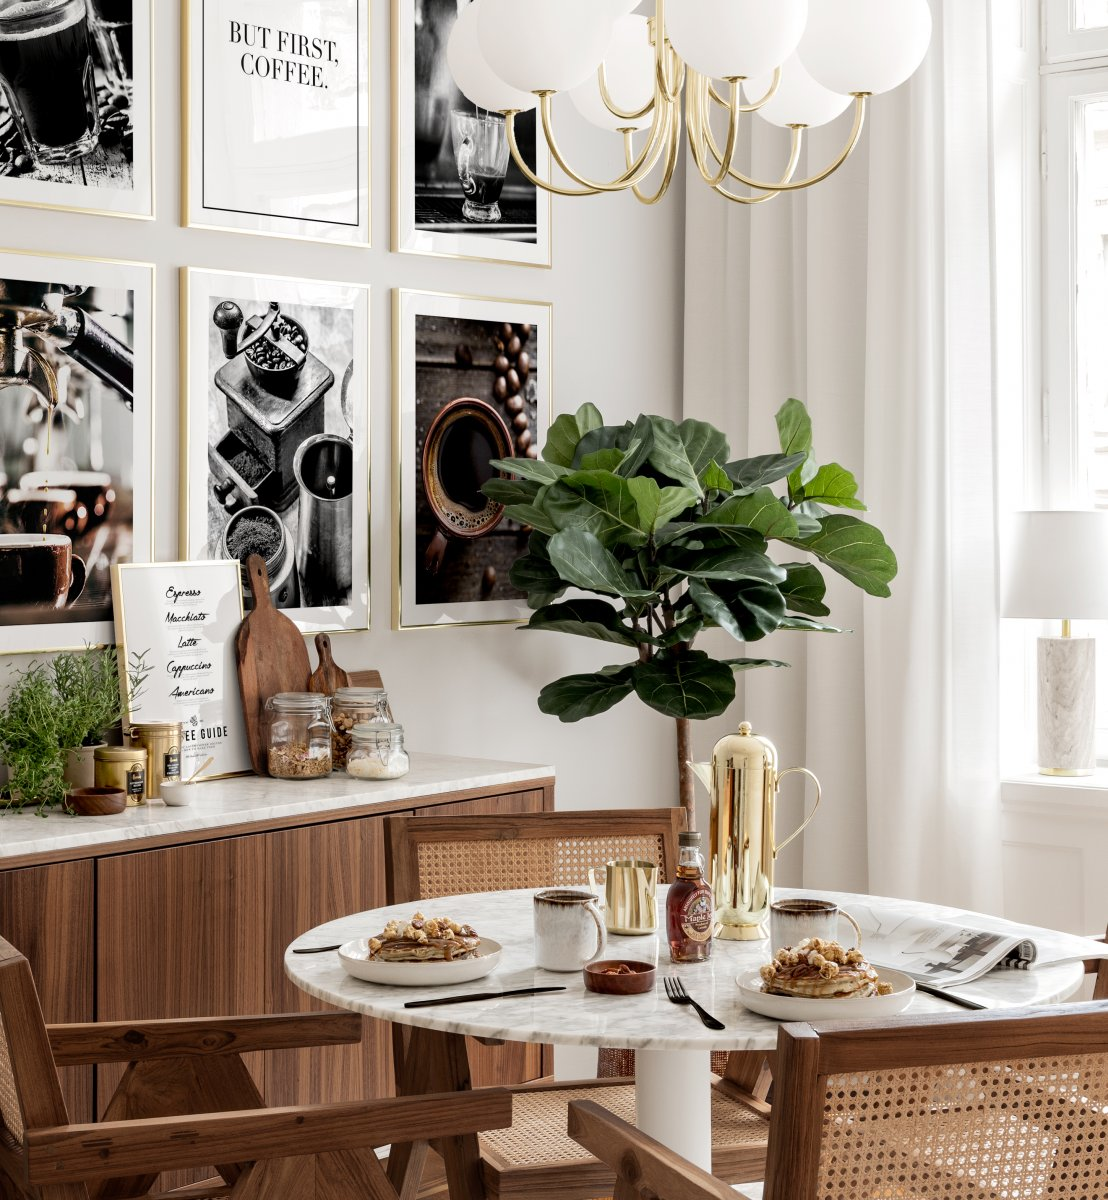 Wall Art Coffee Posters Golden Frames, Dining Room Posters And Prints